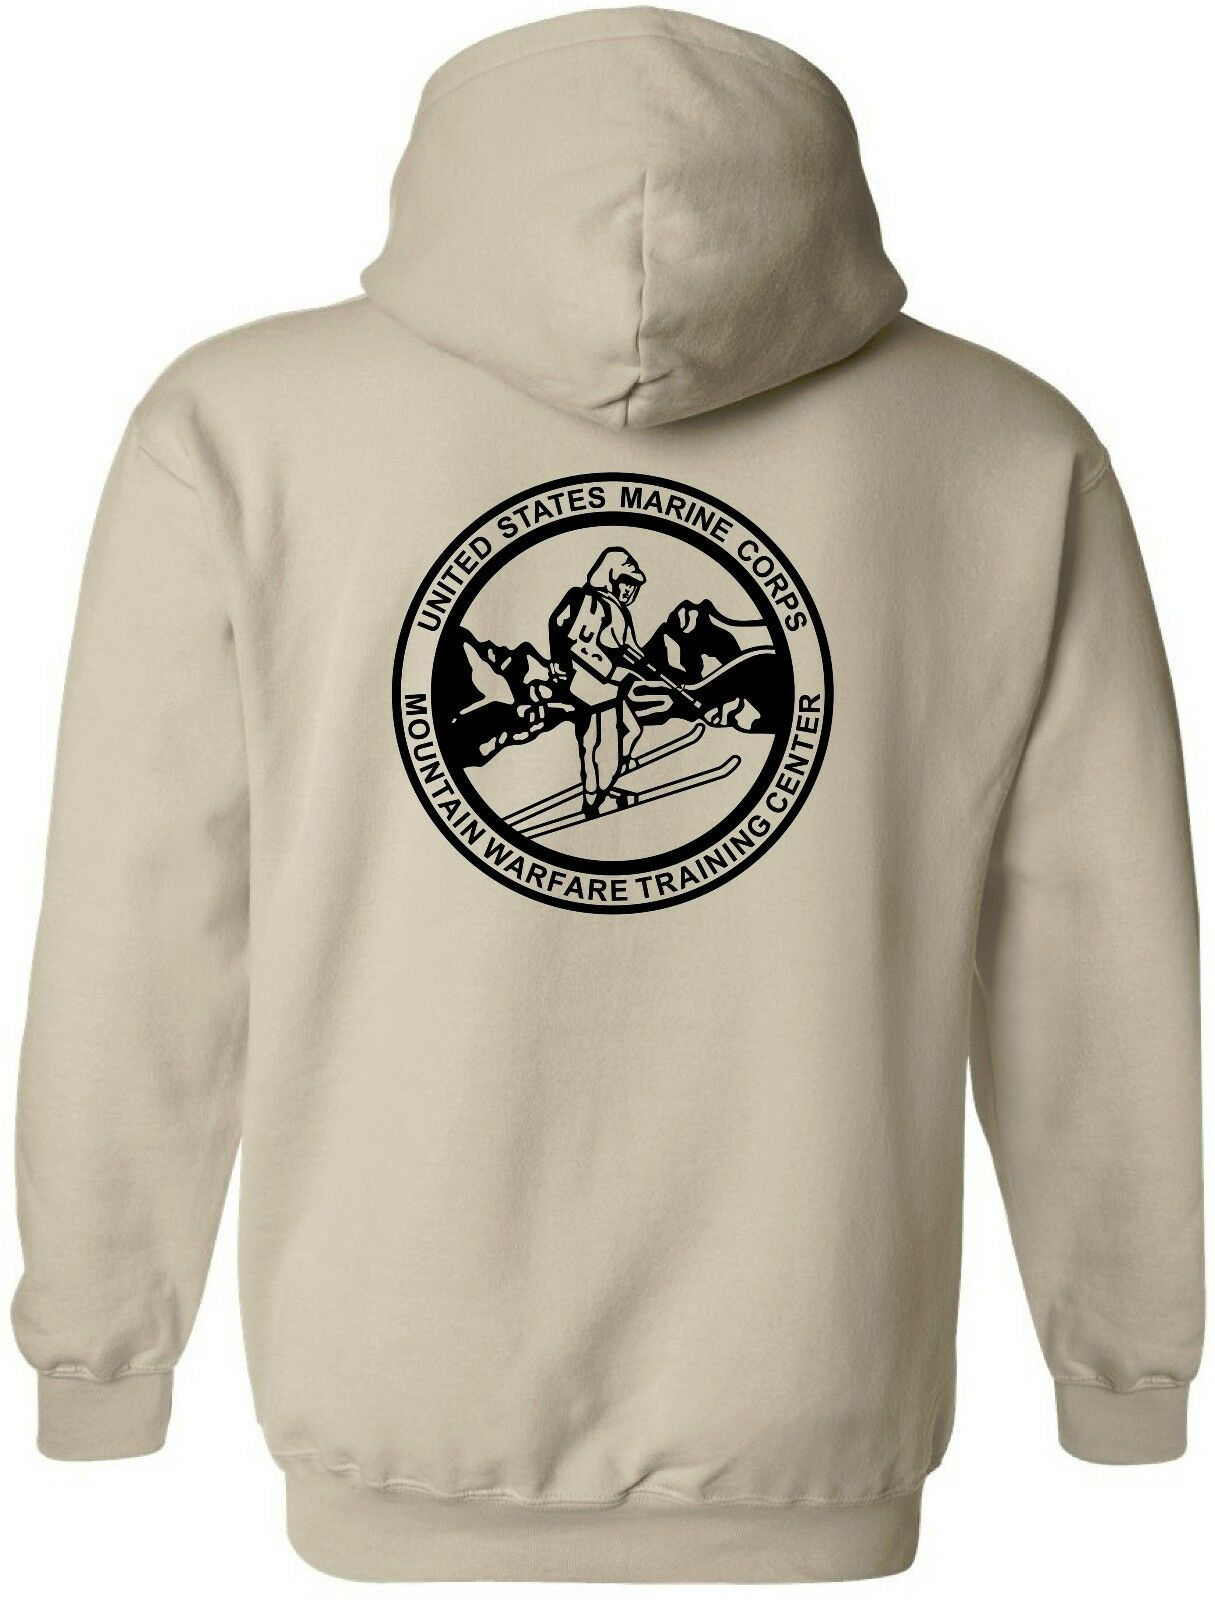 USMC United States Marine Corps - MWTC Mountain Warfare Training Center Hoodie